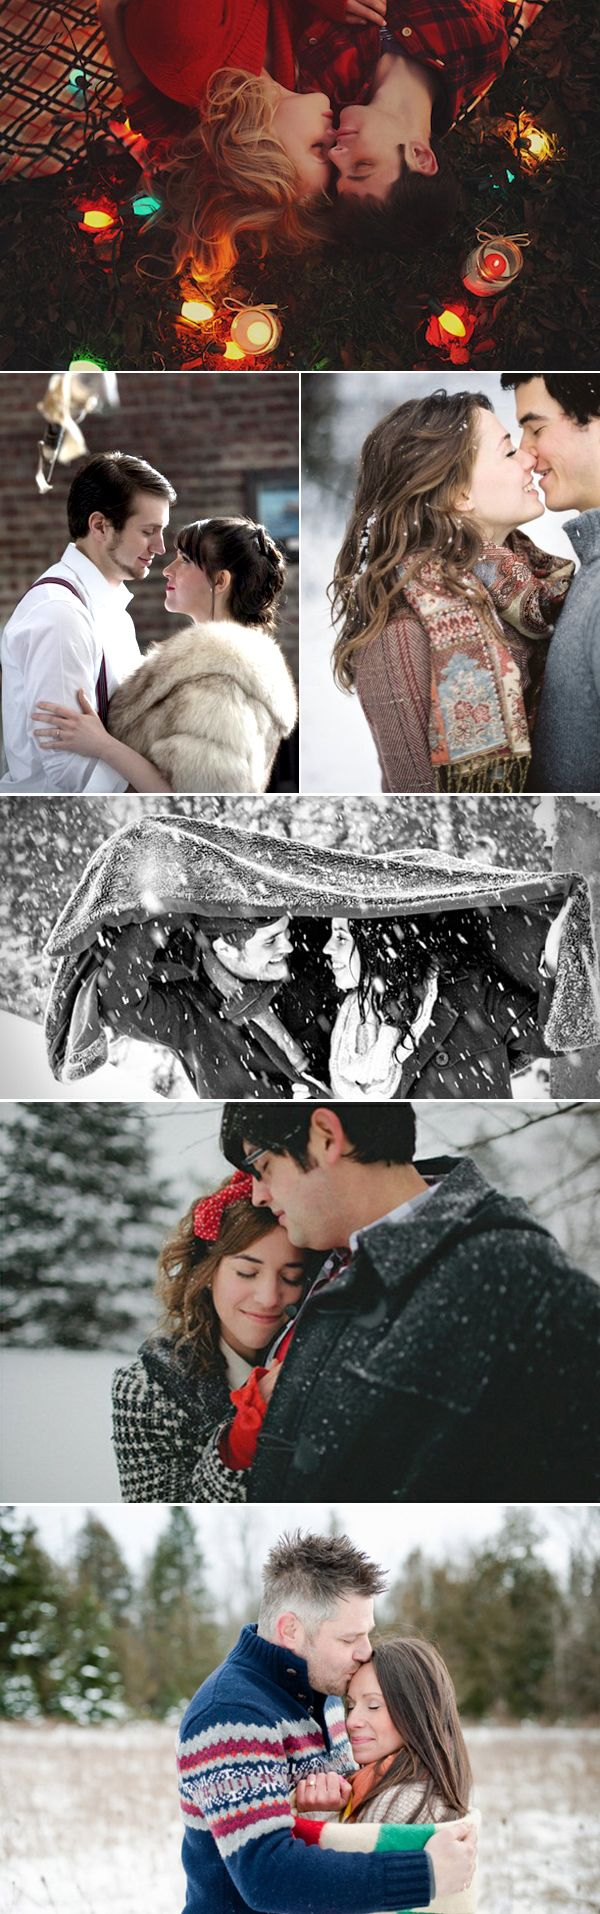 almost every picture here :) The almost kiss, under the blanket, forehead kiss and leaning into each other smiling. IM SO EXCITED